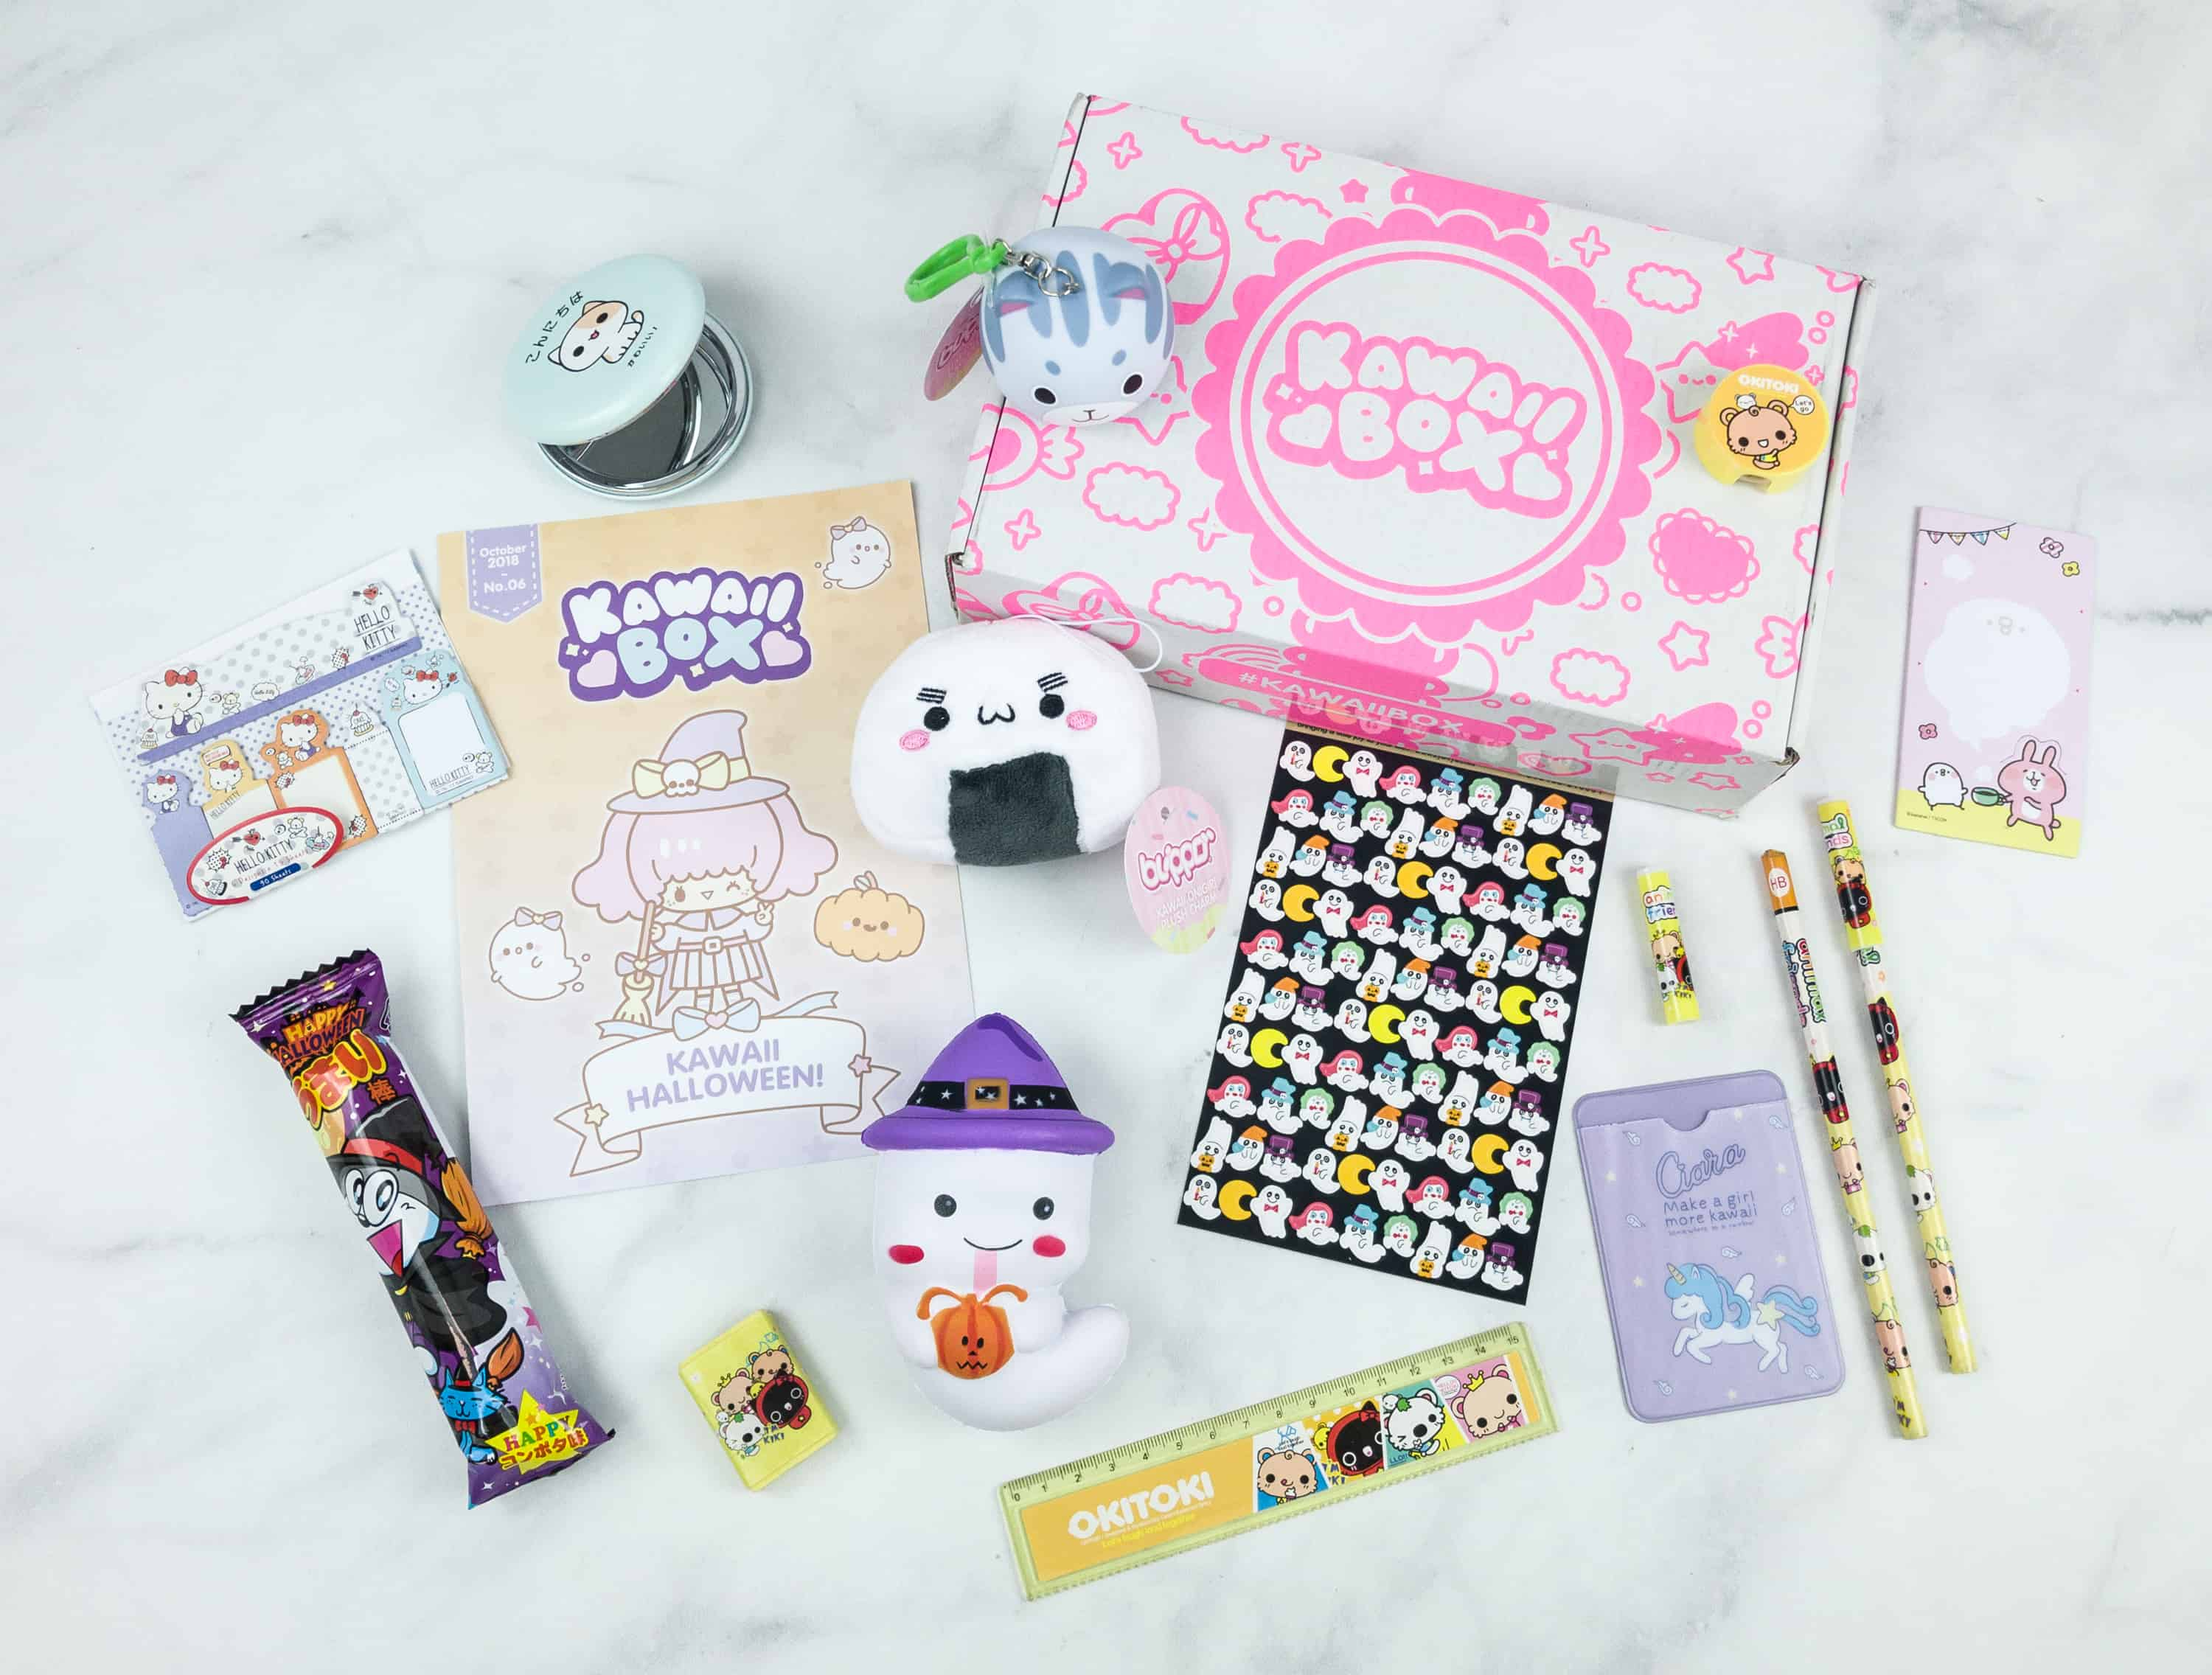 Kawaii Box October 2018 Subscription Box Review